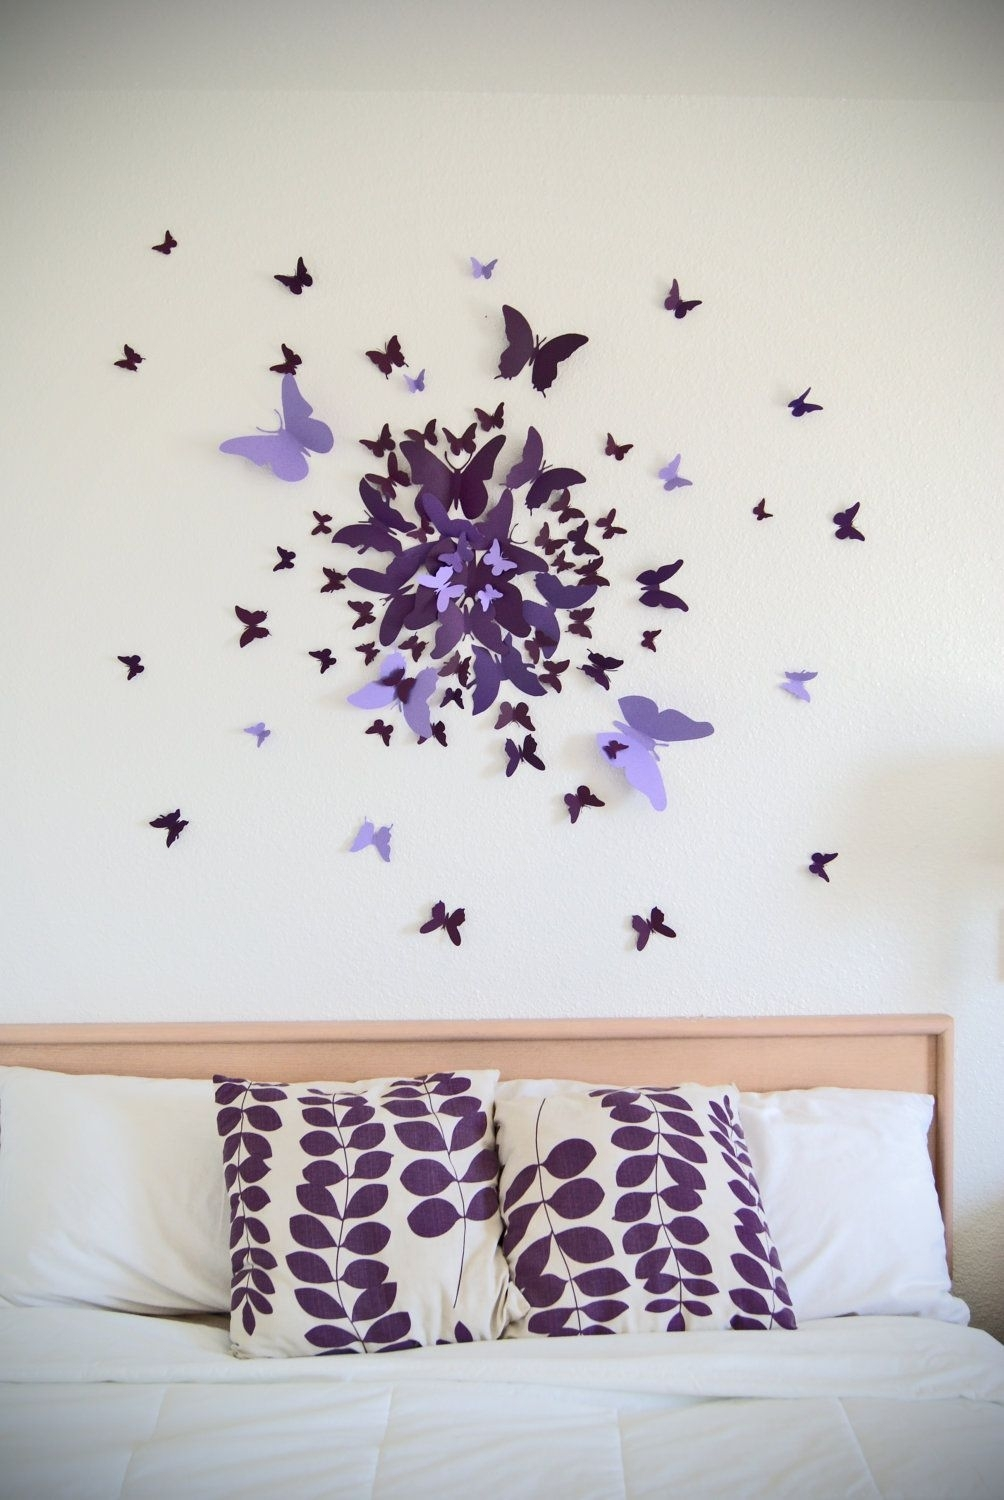 Free Us Shipping  70 3D Butterfly Wall Art Circle Burst. $50.00, Via In Most Recent Butterfly Wall Art (Gallery 11 of 15)